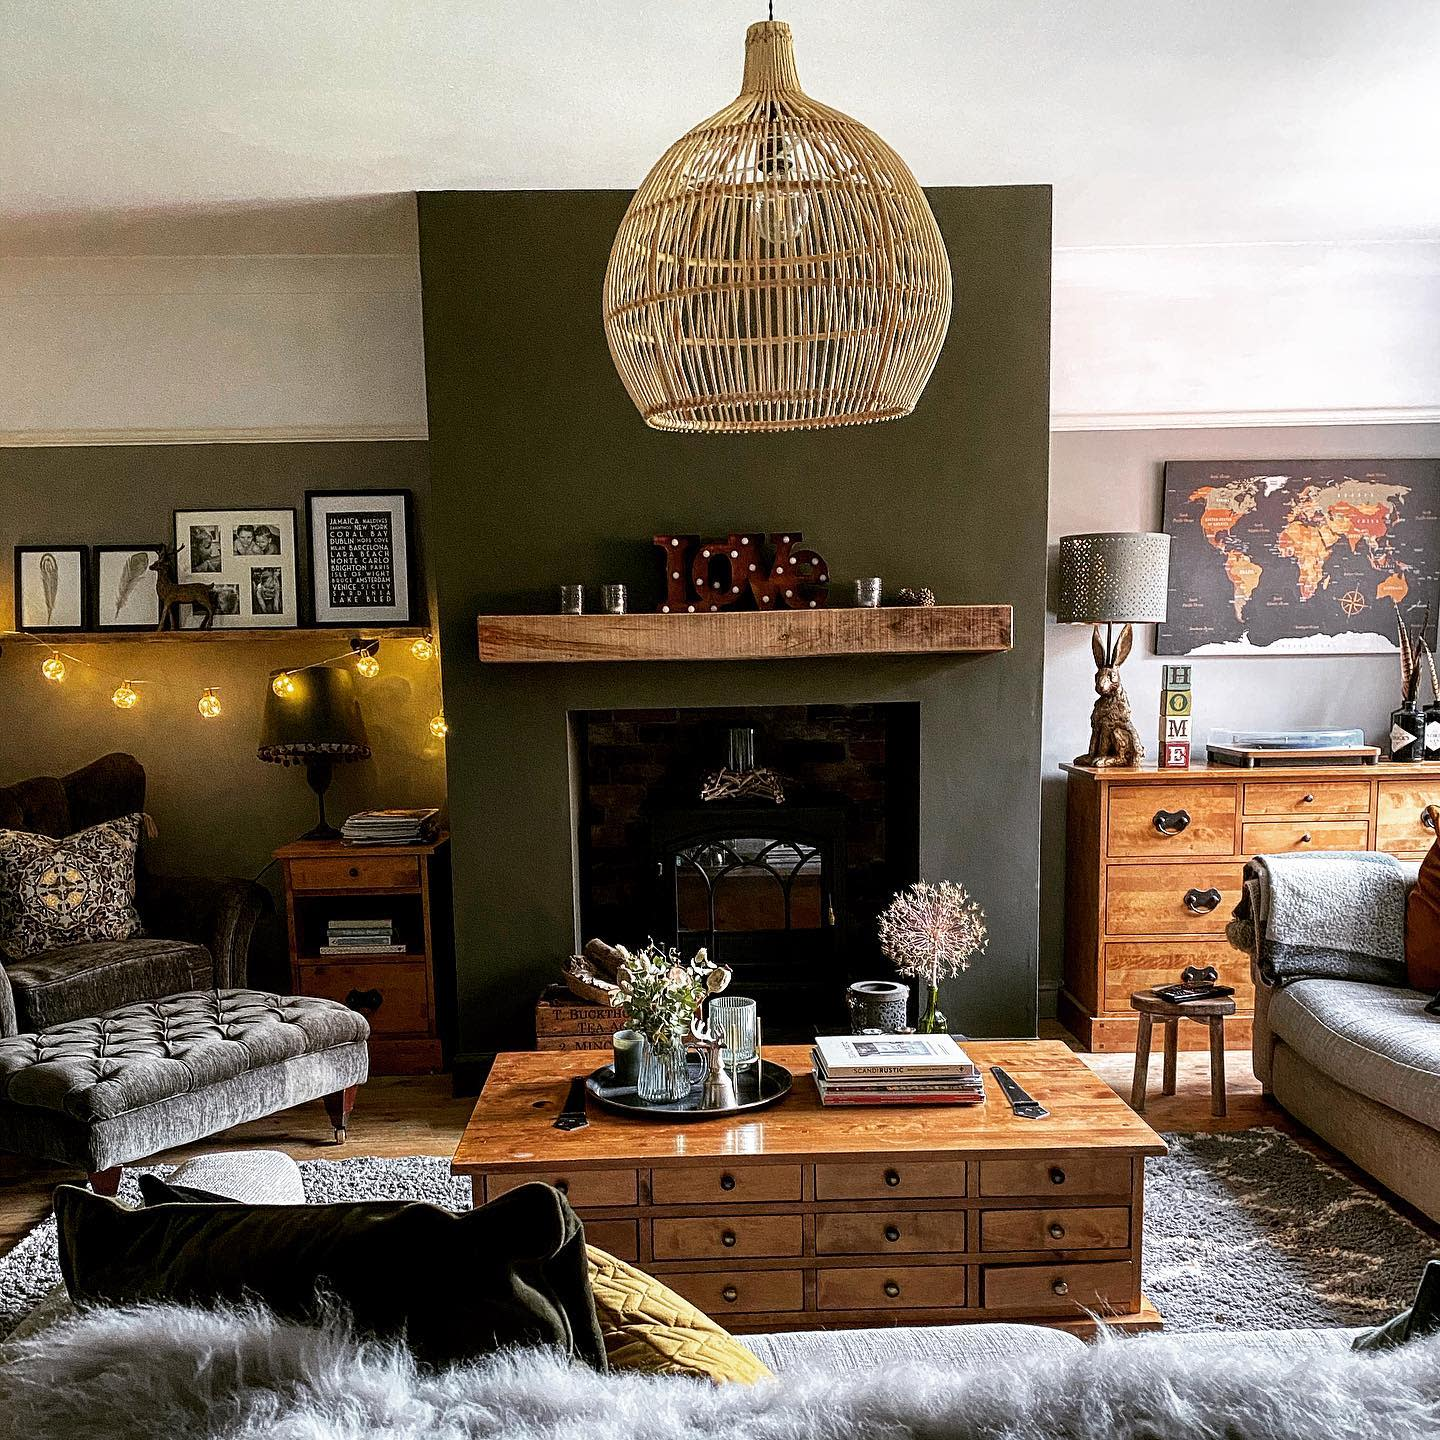 Rustic Country Living Room Ideas -shulashouse